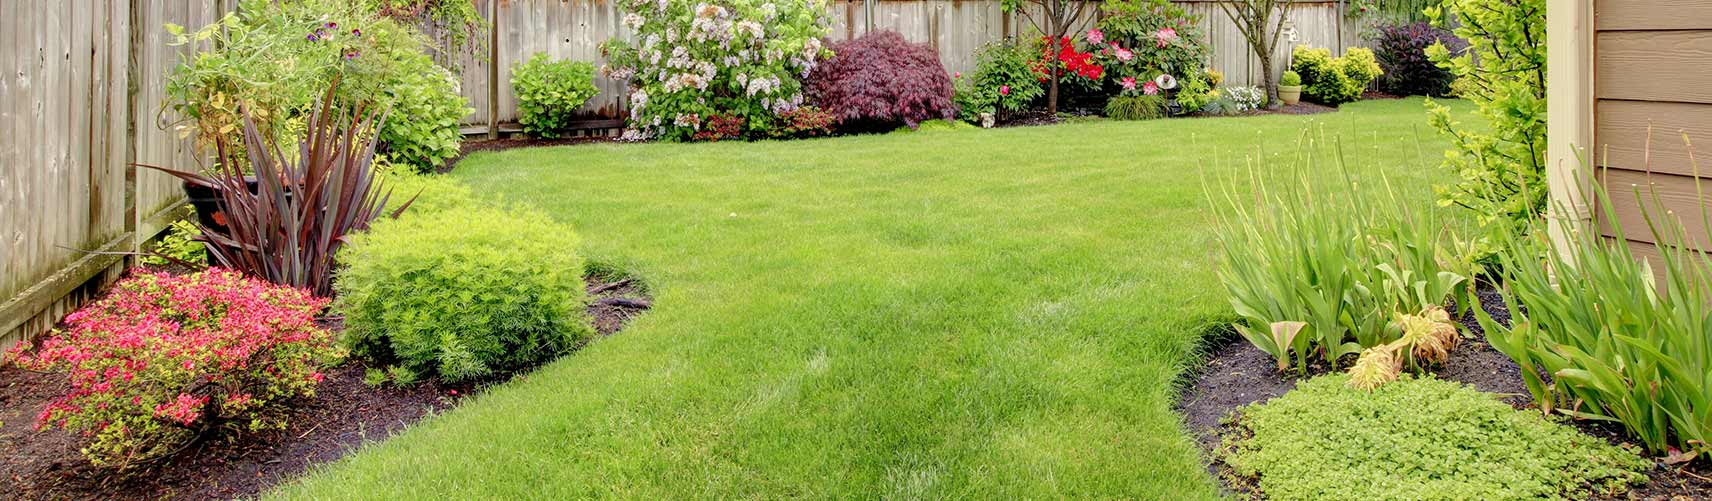 Potomac Landscaping Company, Landscaper and Lawn Care Services